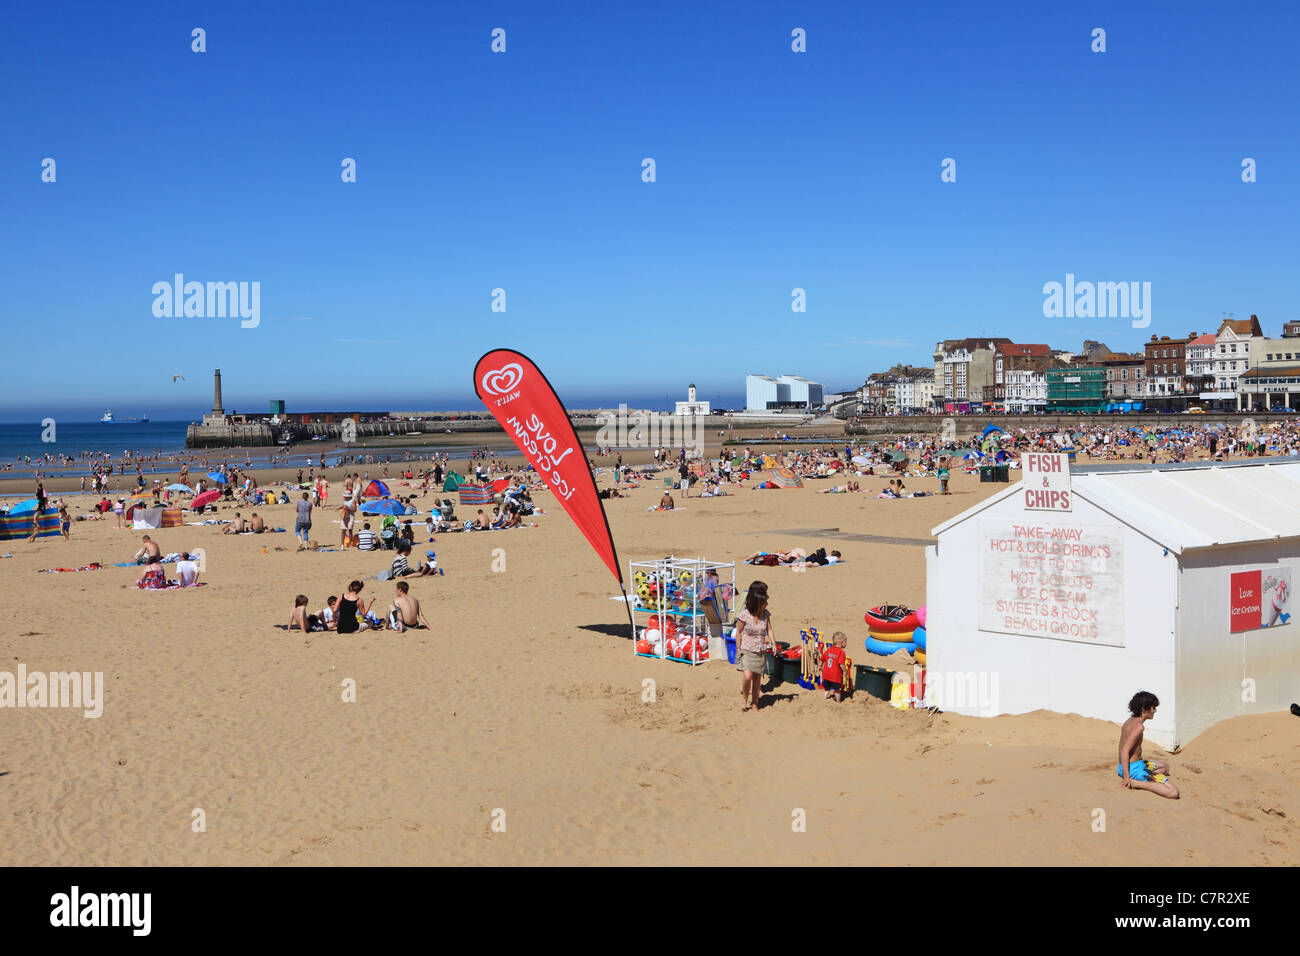 The beach at Margate, Kent, England, in the summertime - Stock Image